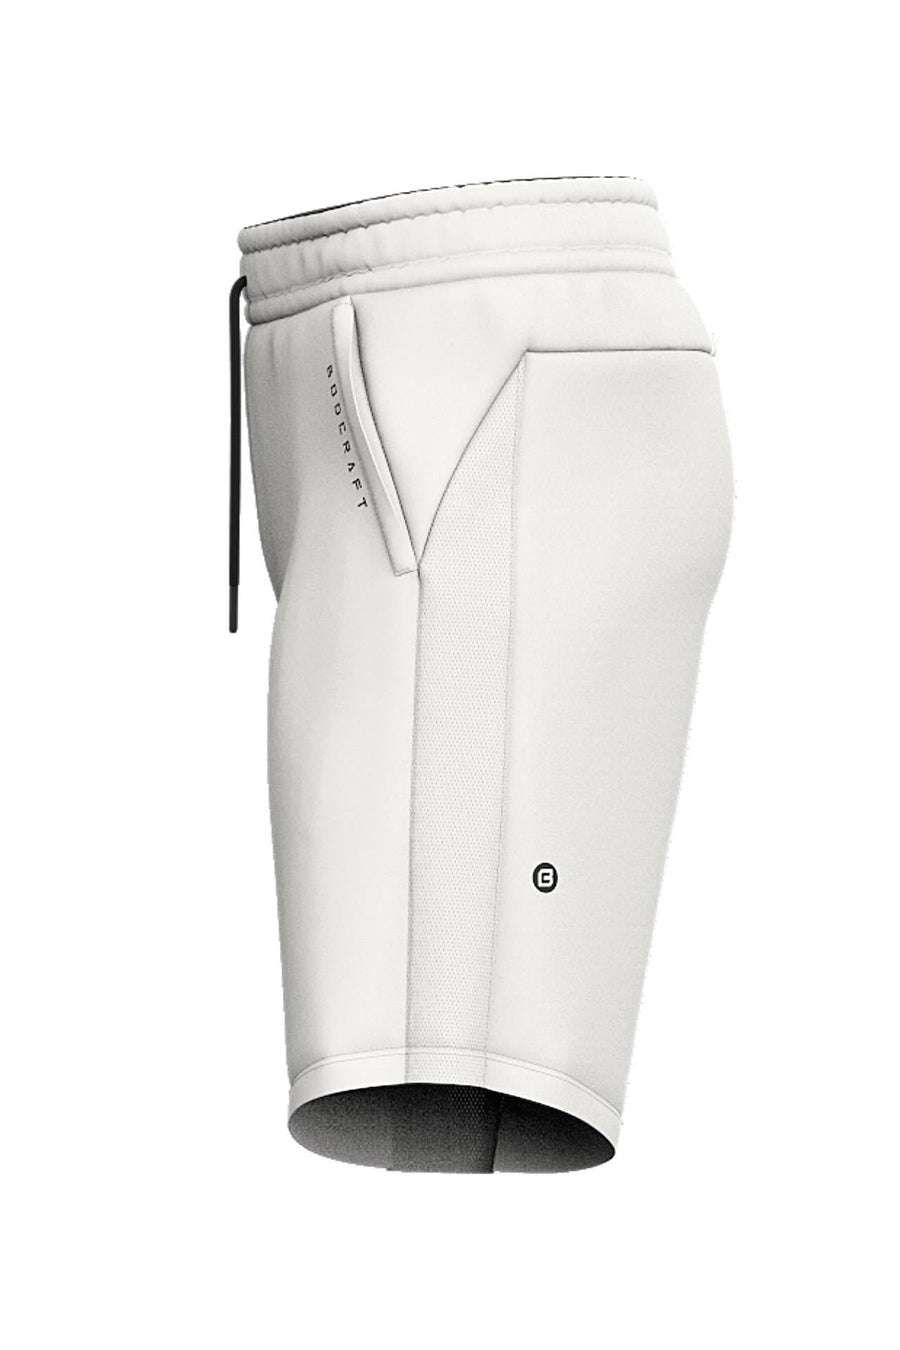 Origin Performance Shorts - Blizzard White - Bodcraft